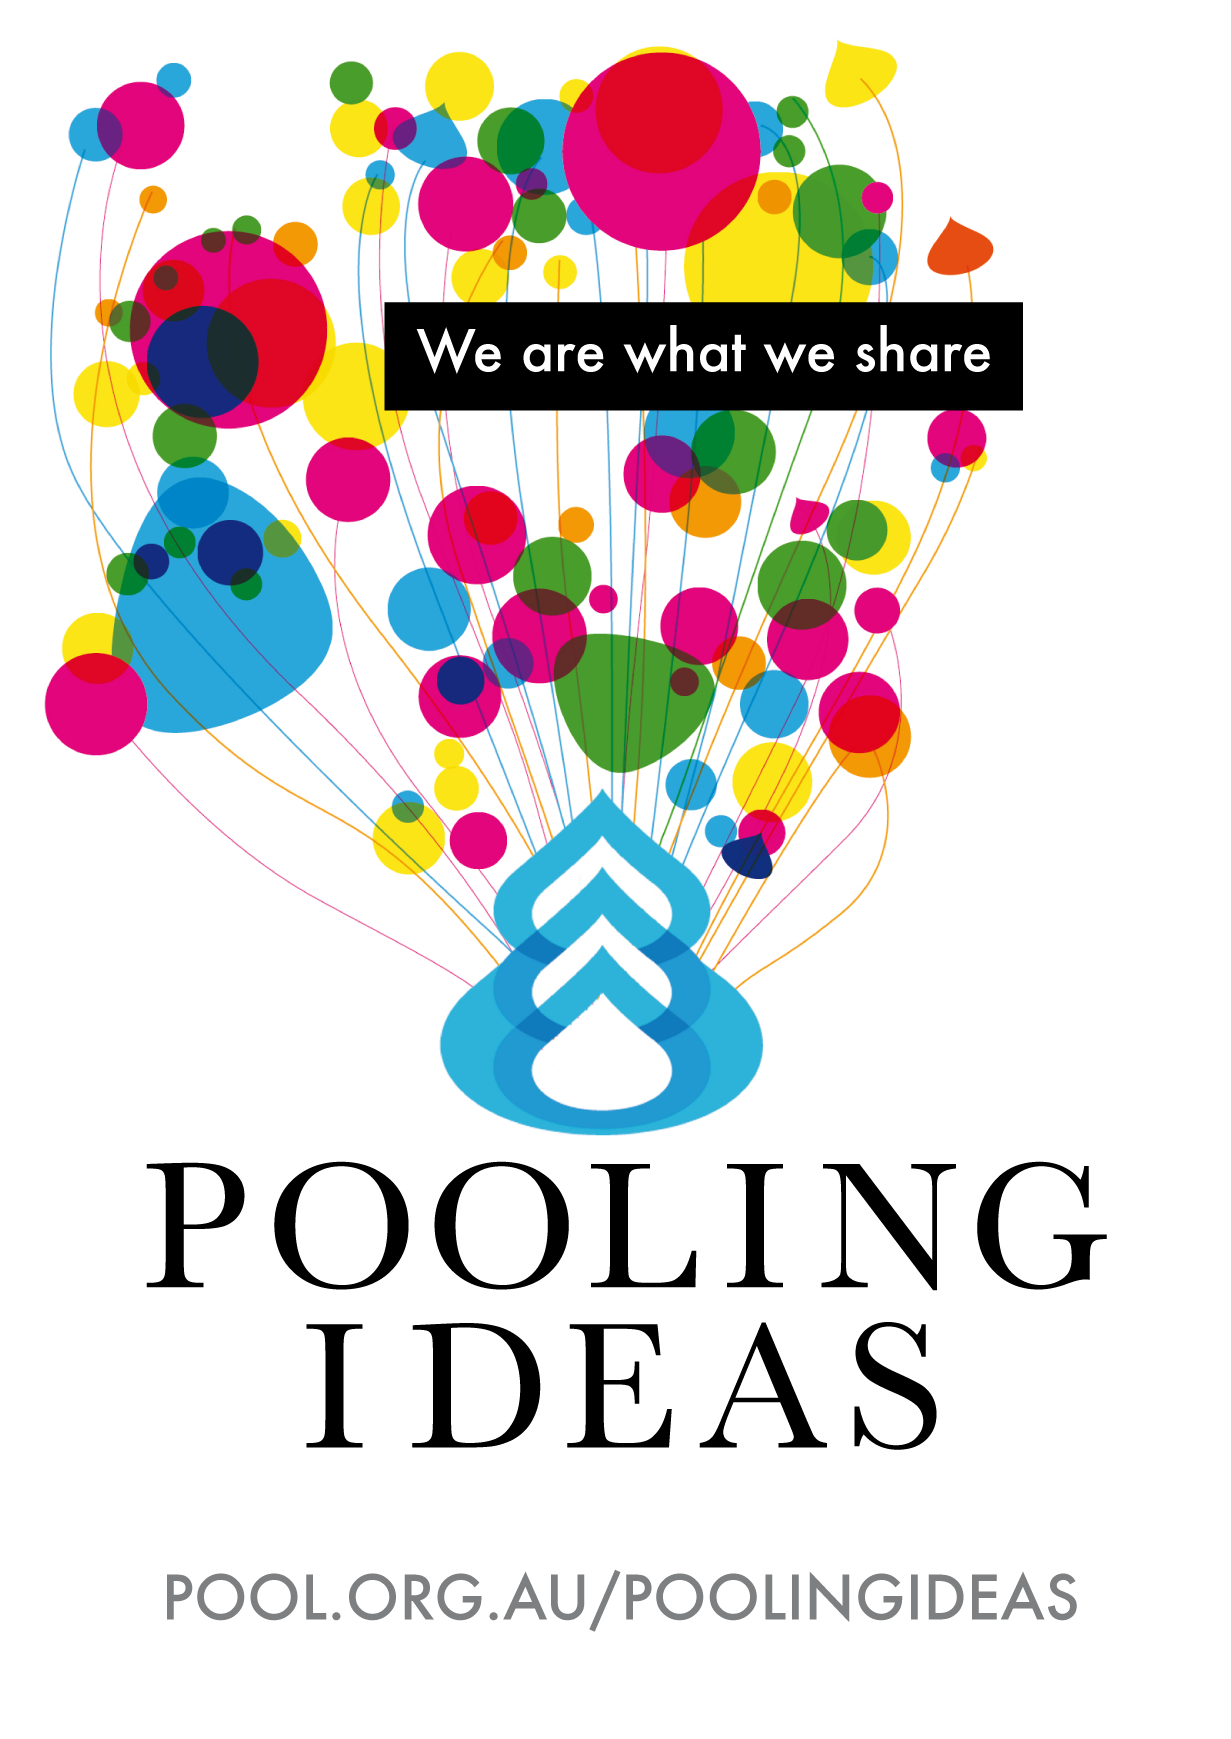 Pooling Ideas